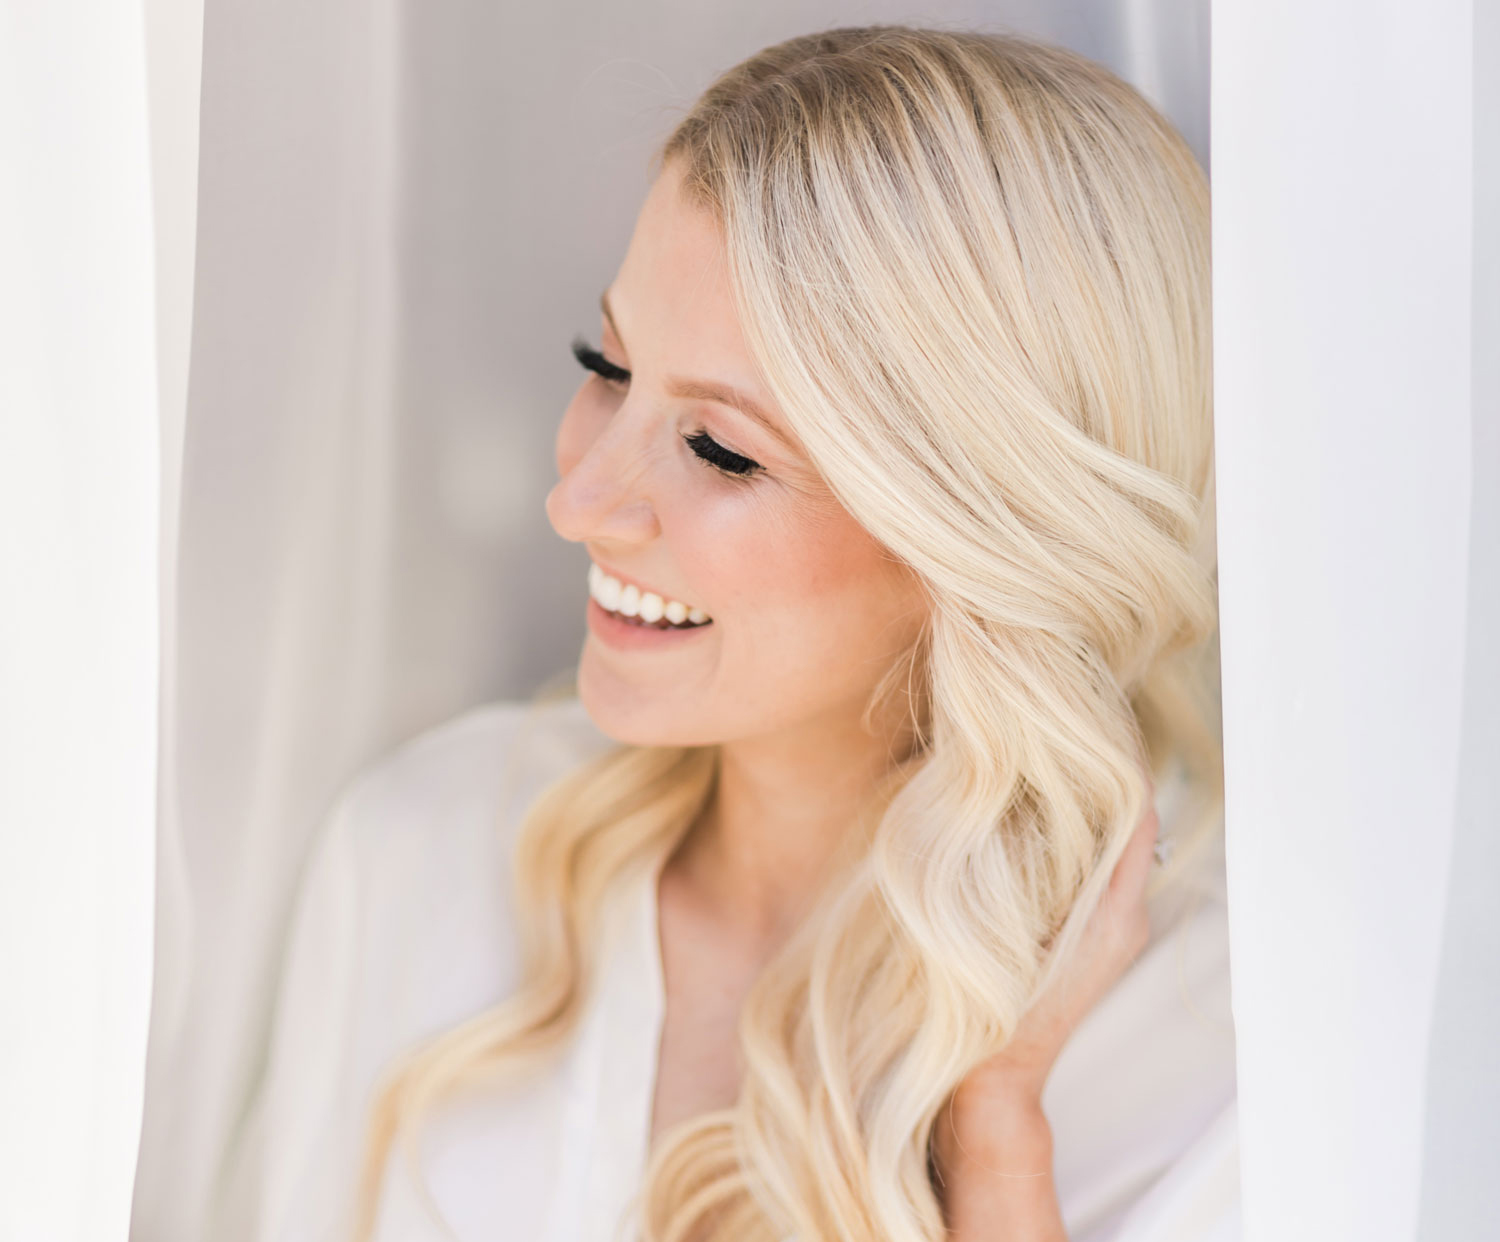 blonde women with soft waves in white robe laughing while looking out window